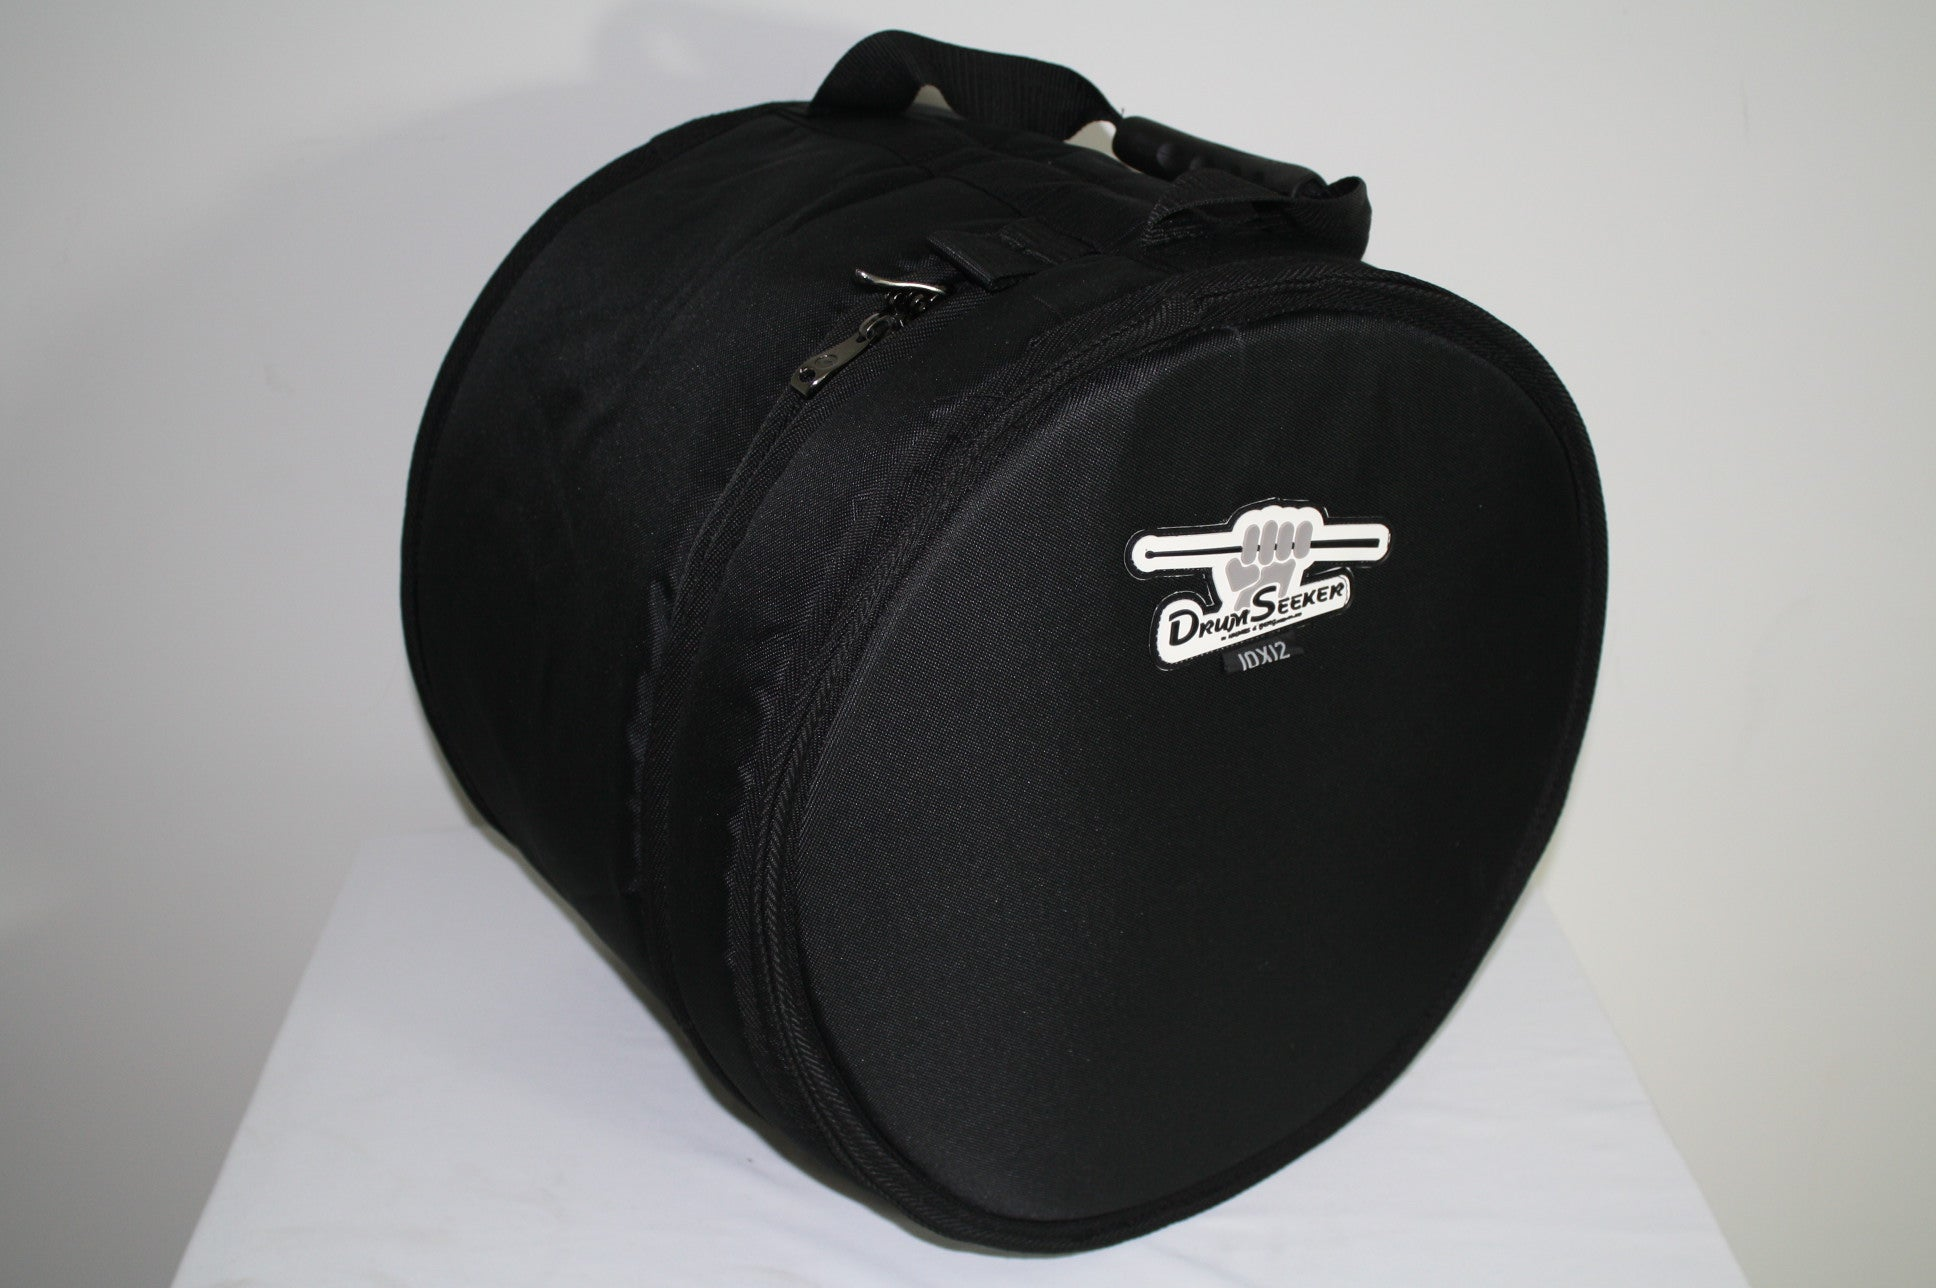 H&B  Drum Seeker 10 x 13 Inches Tom Drum Bag